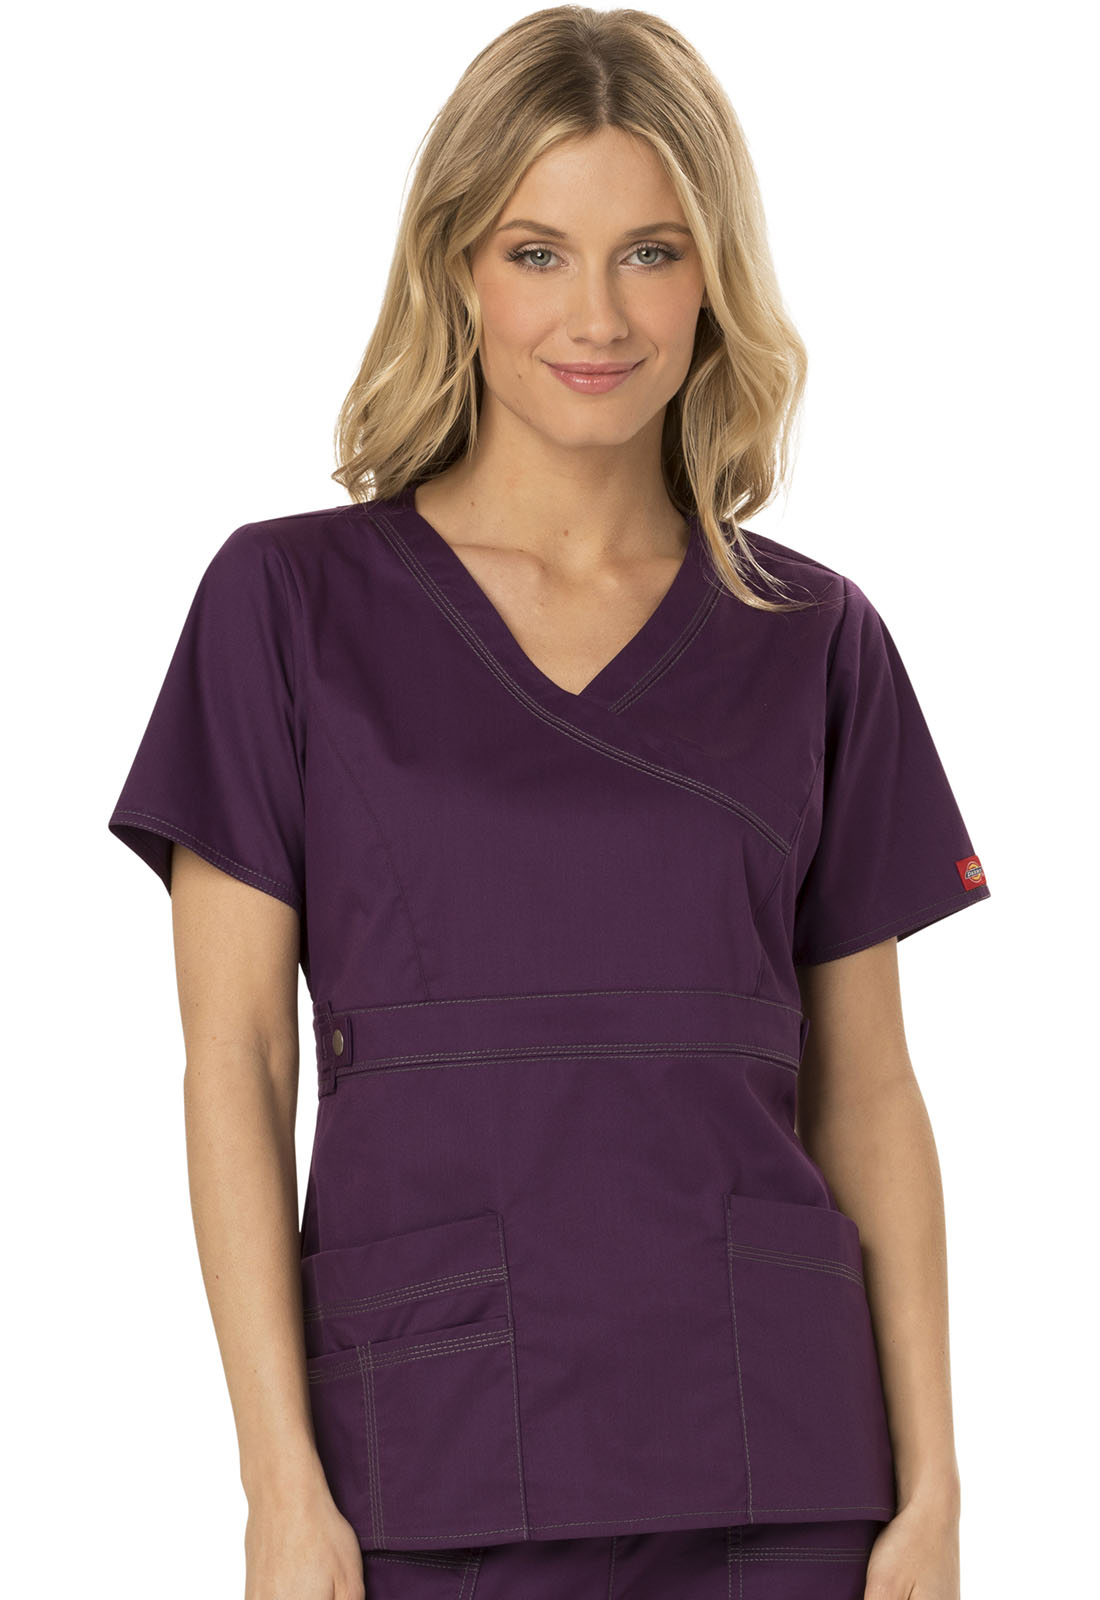 fe7c520f44e Gen Flex Mock Wrap Top in Eggplant 817355-EGPZ from The Nurses ...